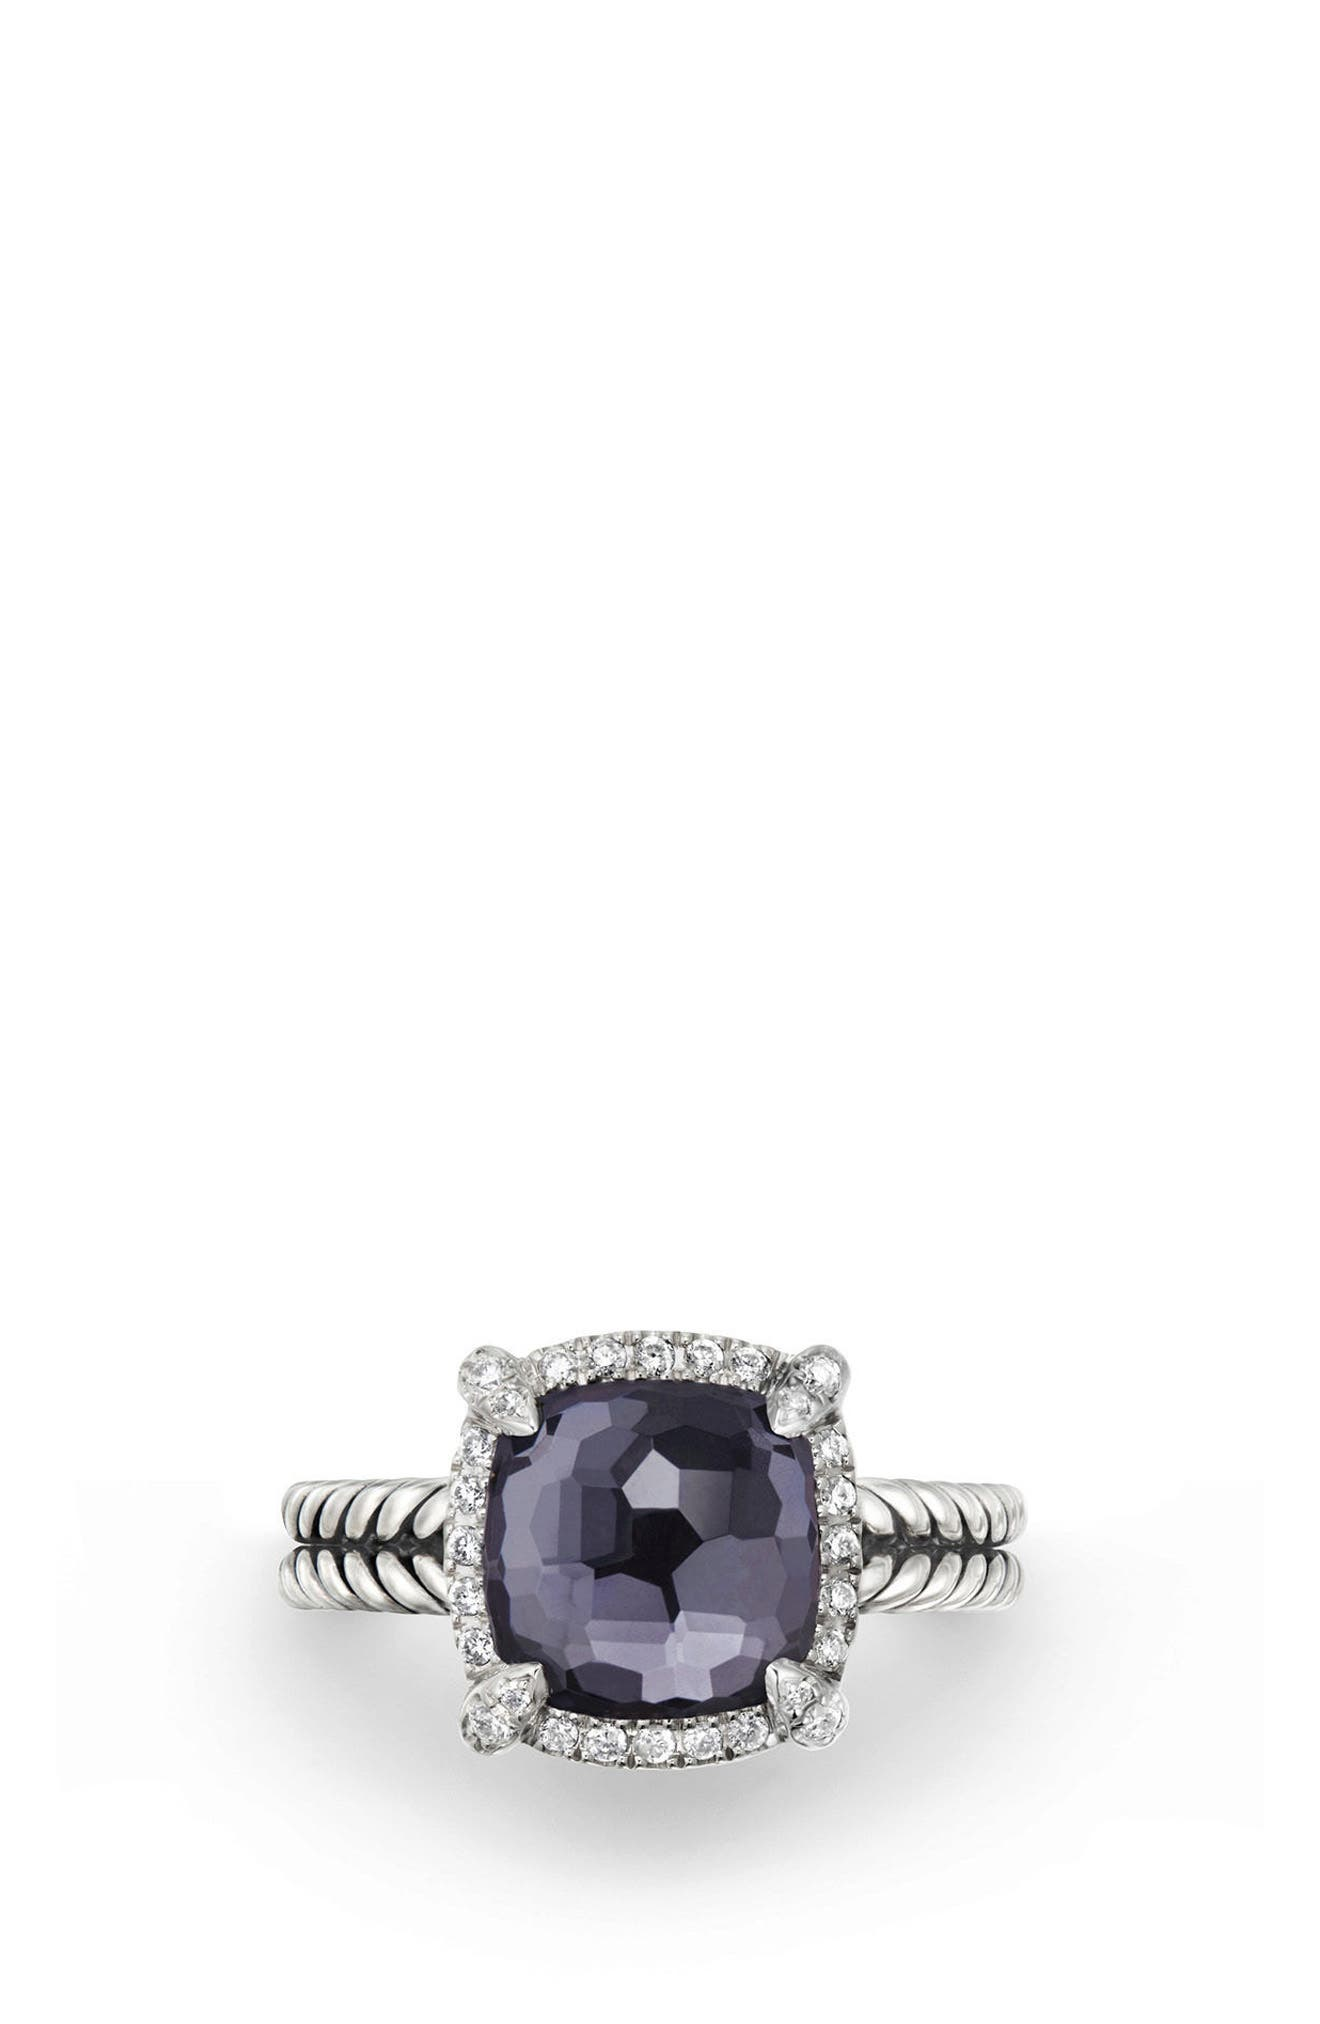 Châtelaine Pavé Bezel Ring with Black Orchid & Diamonds, 9mm,                             Alternate thumbnail 3, color,                             AMETHYST/ HEMETINE